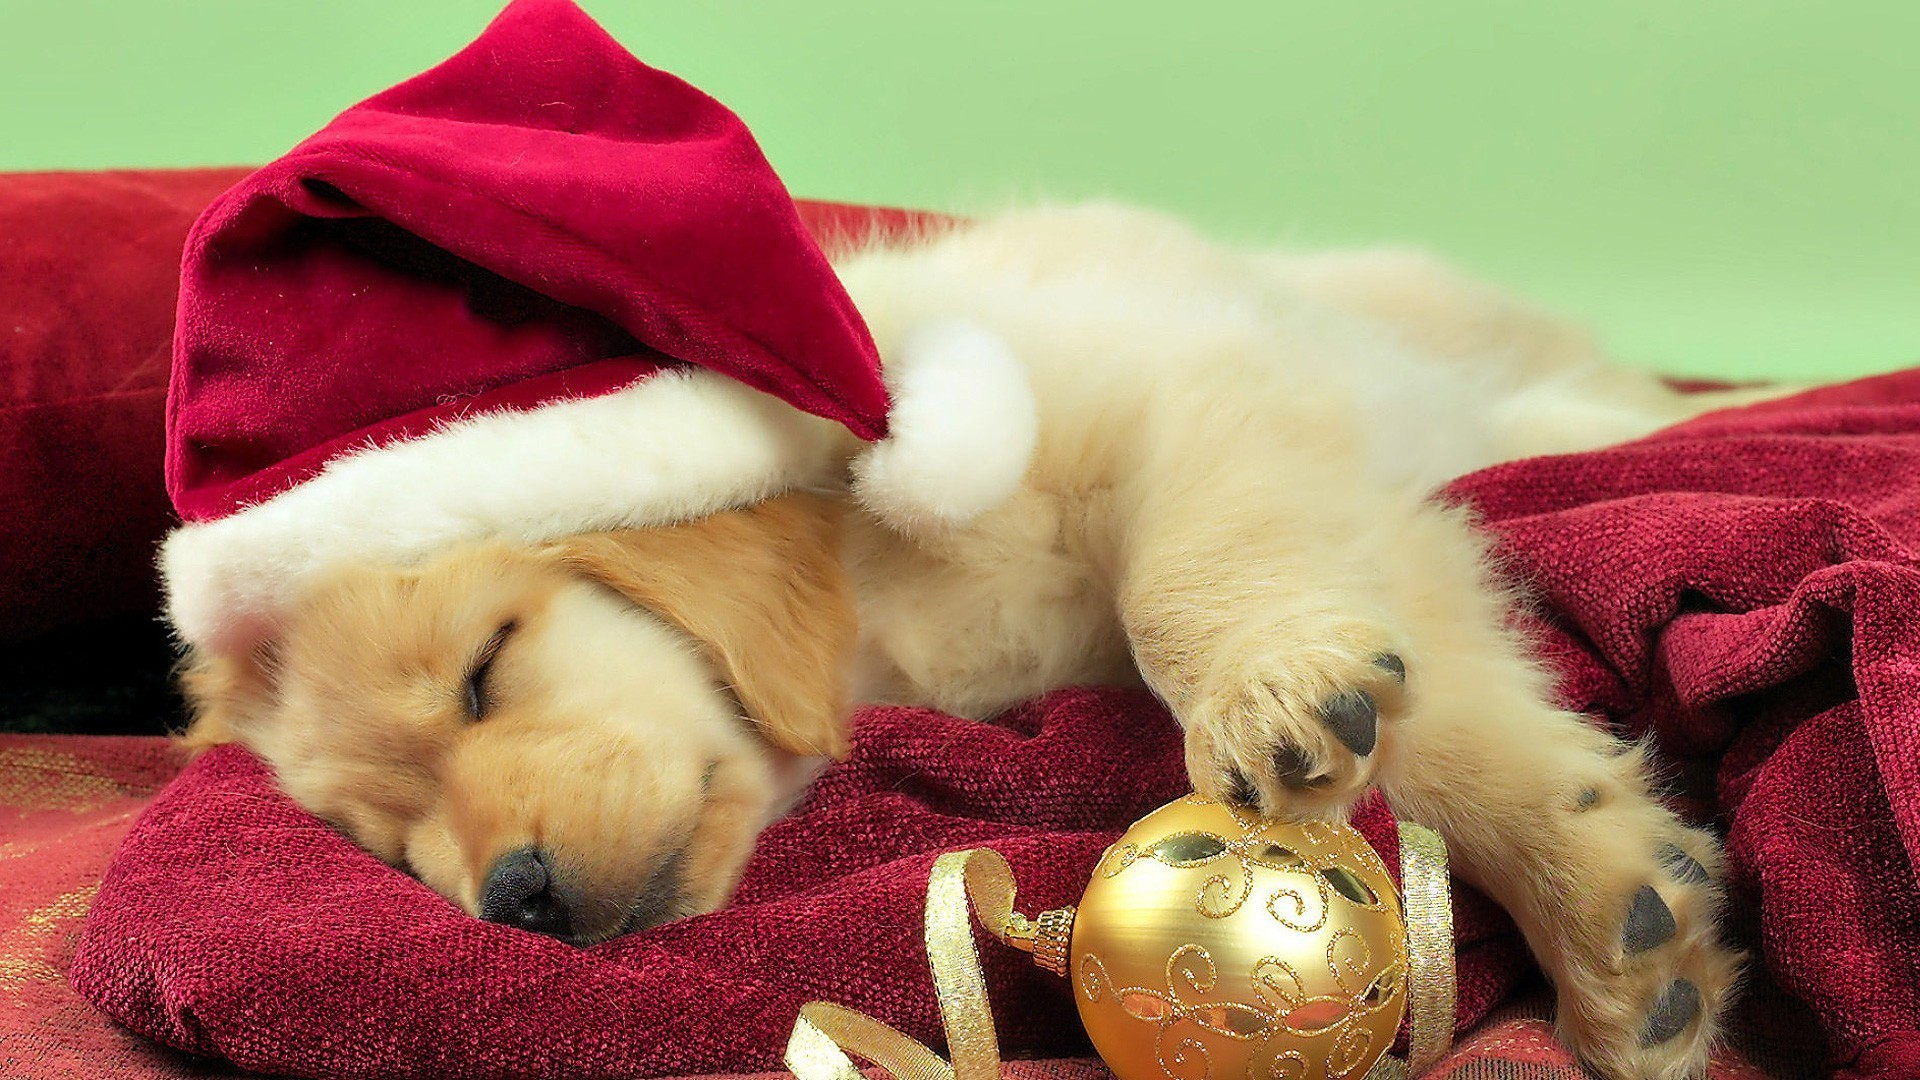 Husky Christmas Puppy.Christmas Puppies Wallpaper 48 Images